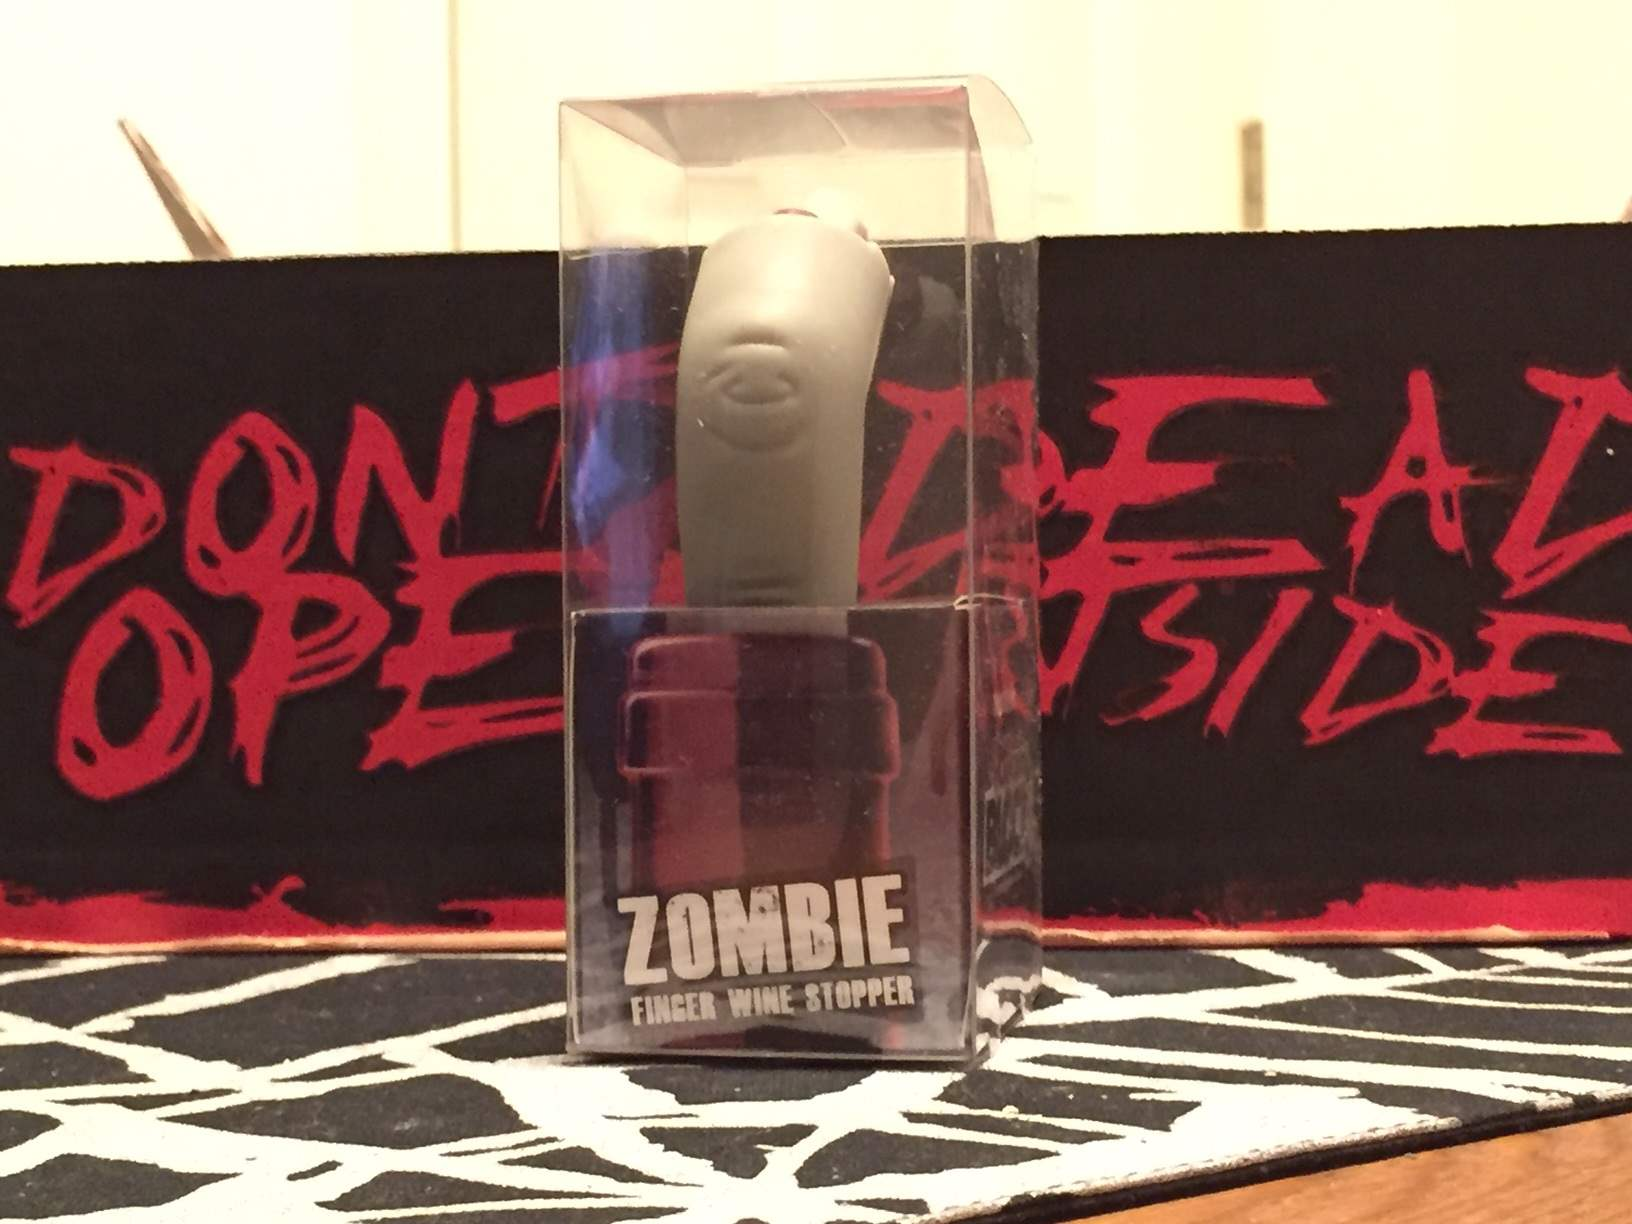 A wine stopper in the shape of a zombie finger in February 2016's Horror Block